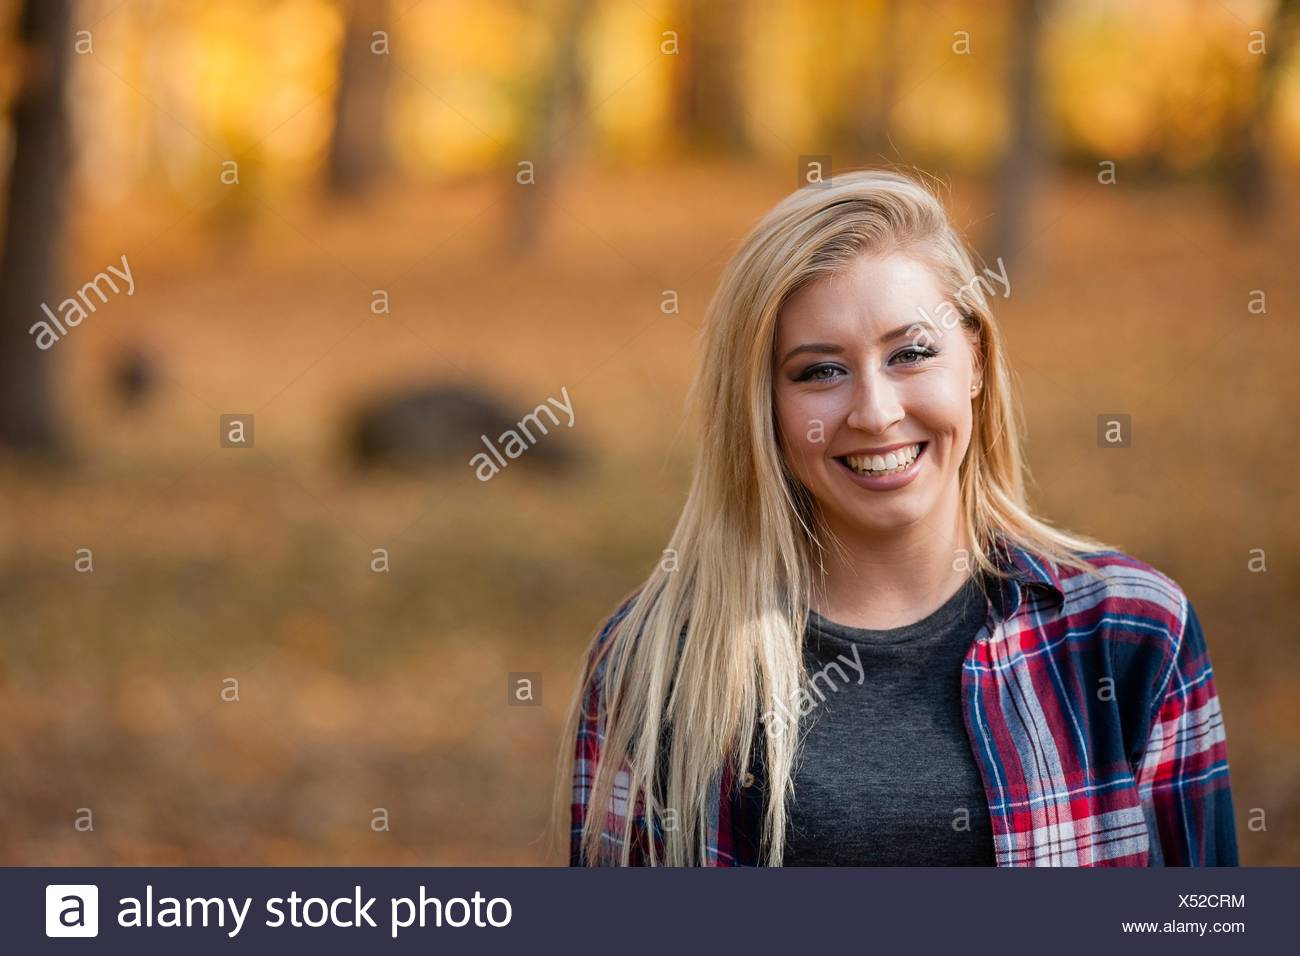 Head and shoulder portrait of young woman with long blond hair in autumn forest - Stock Image